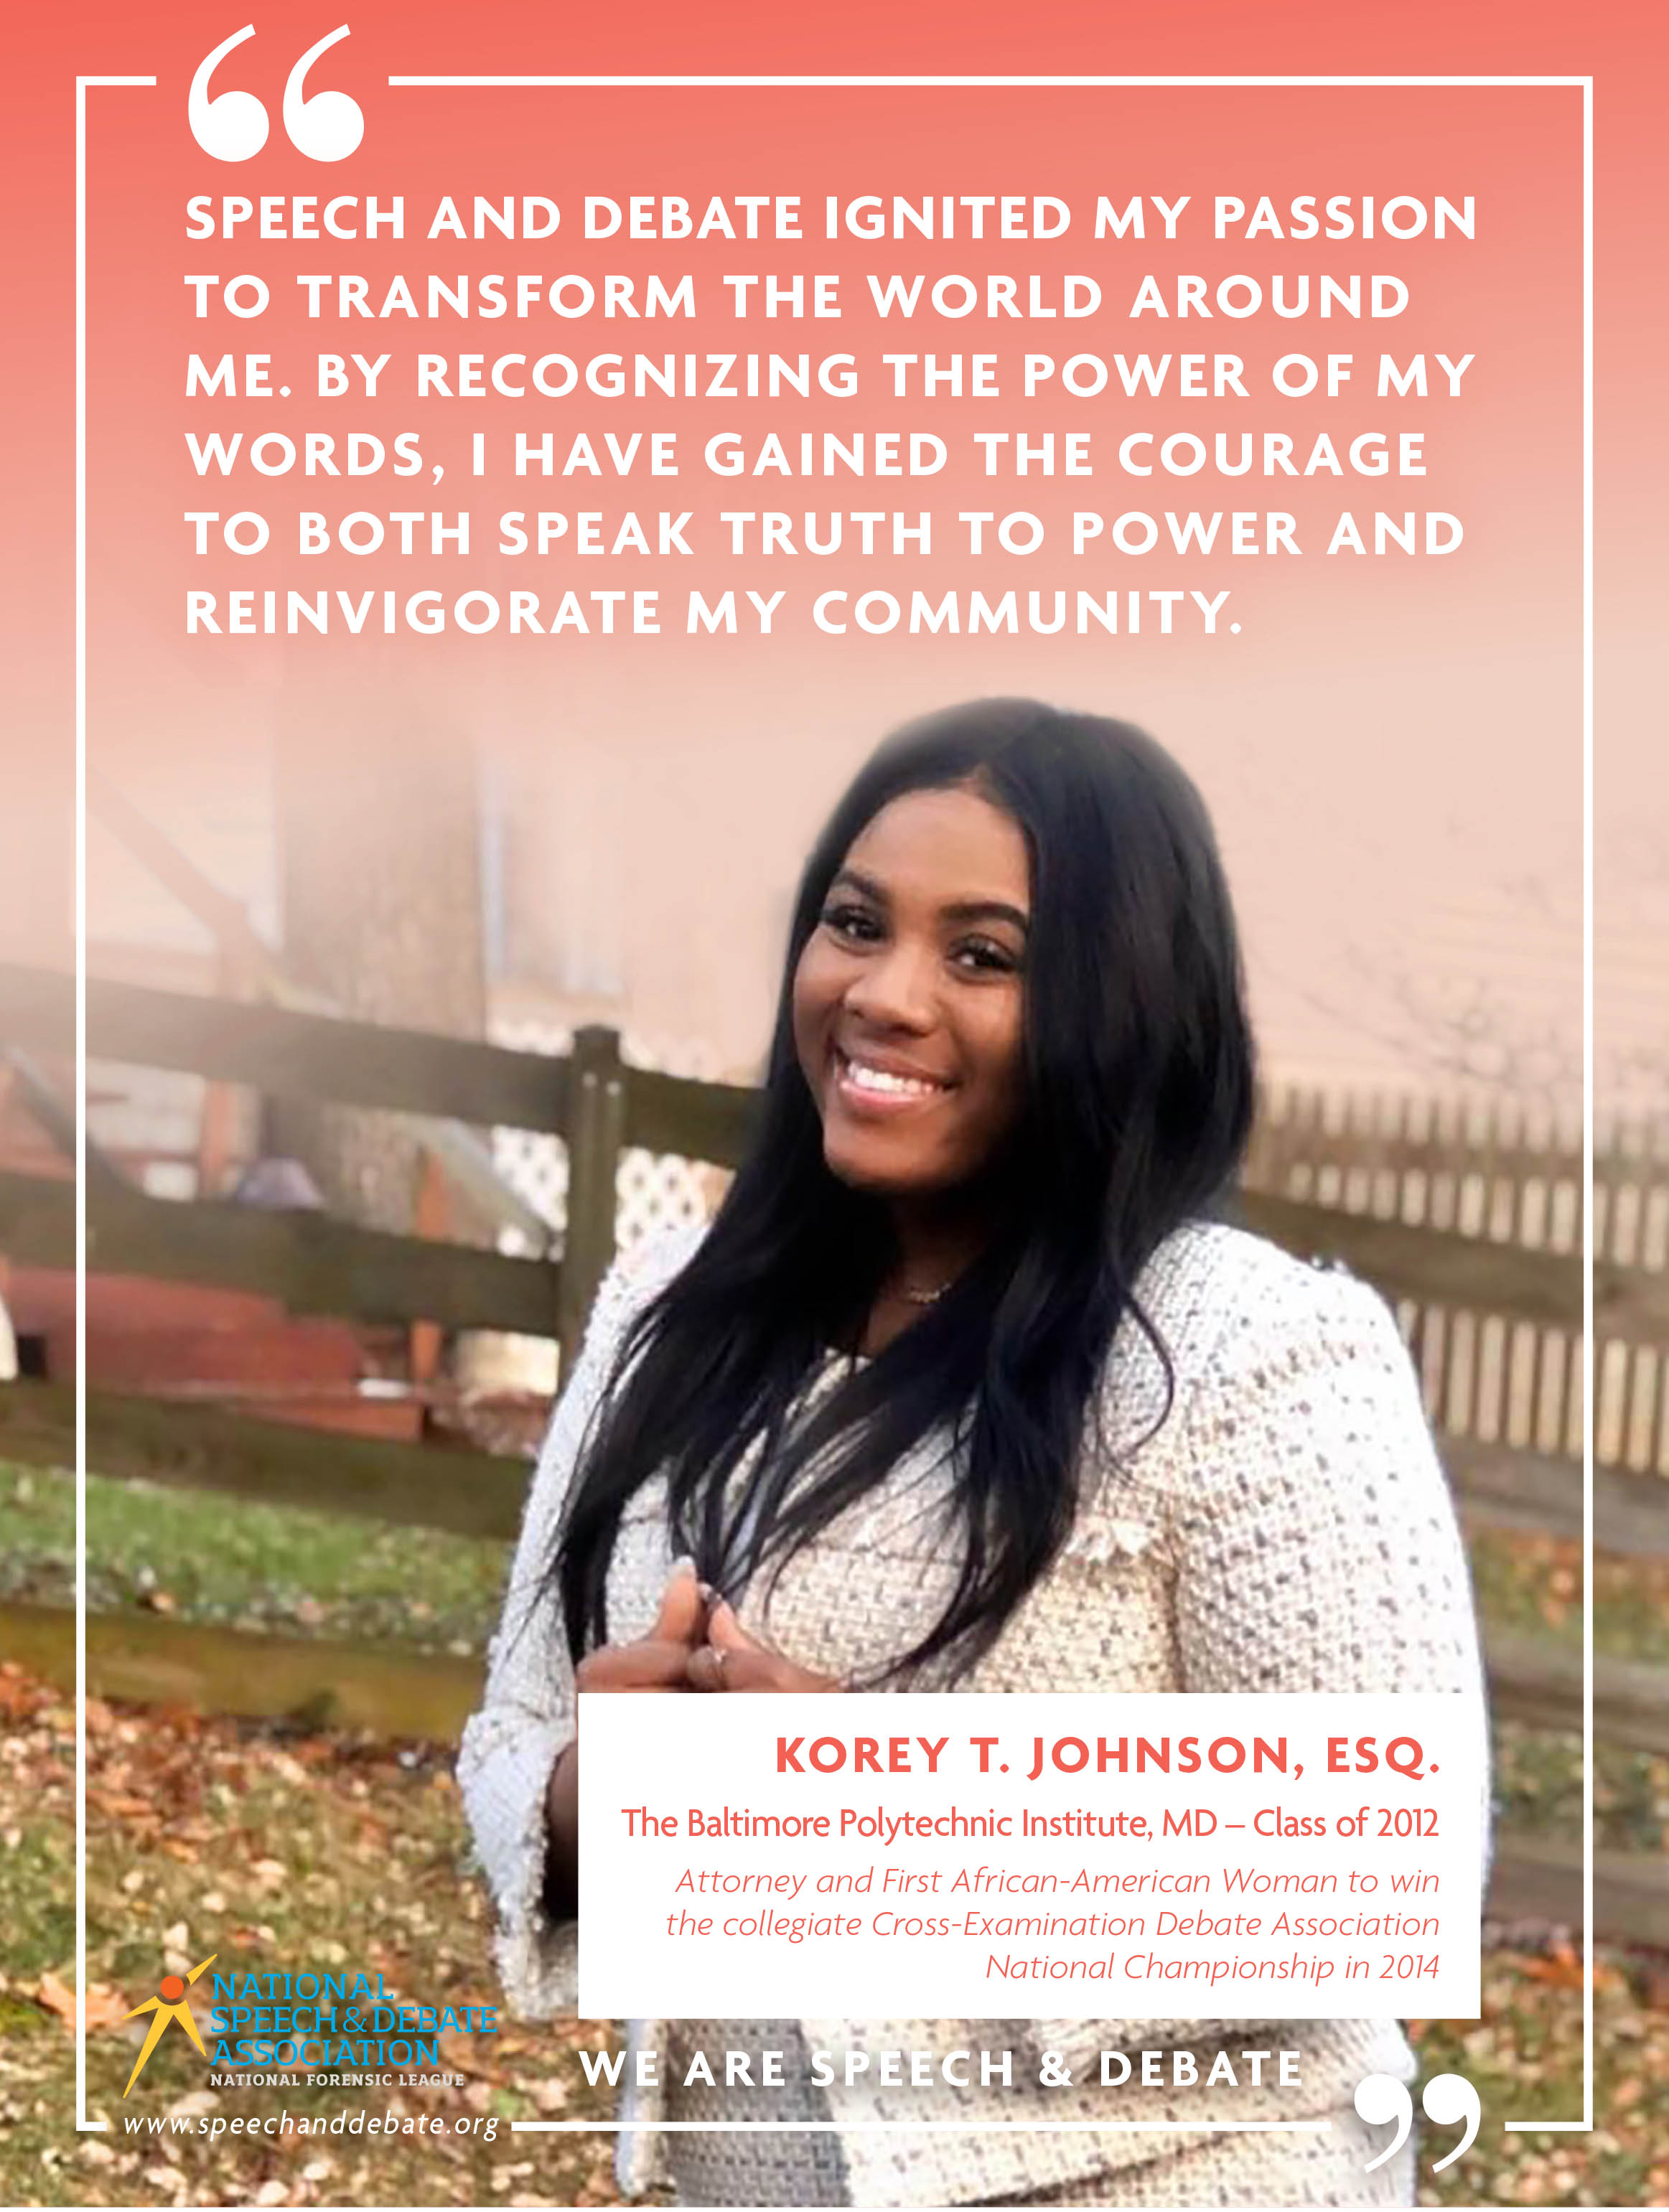 """SPEECH AND DEBATE IGNITED MY PASSION TO TRANSFORM THE WORLD AROUND ME. BY RECOGNIZING THE POWER OF MY WORDS, I HAVE GAINED THE COURAGE TO BOTH SPEAK TRUTH TO POWER AND REINVIGORATE MY COMMUNITY."" - Korey T, Johnson, Esq."